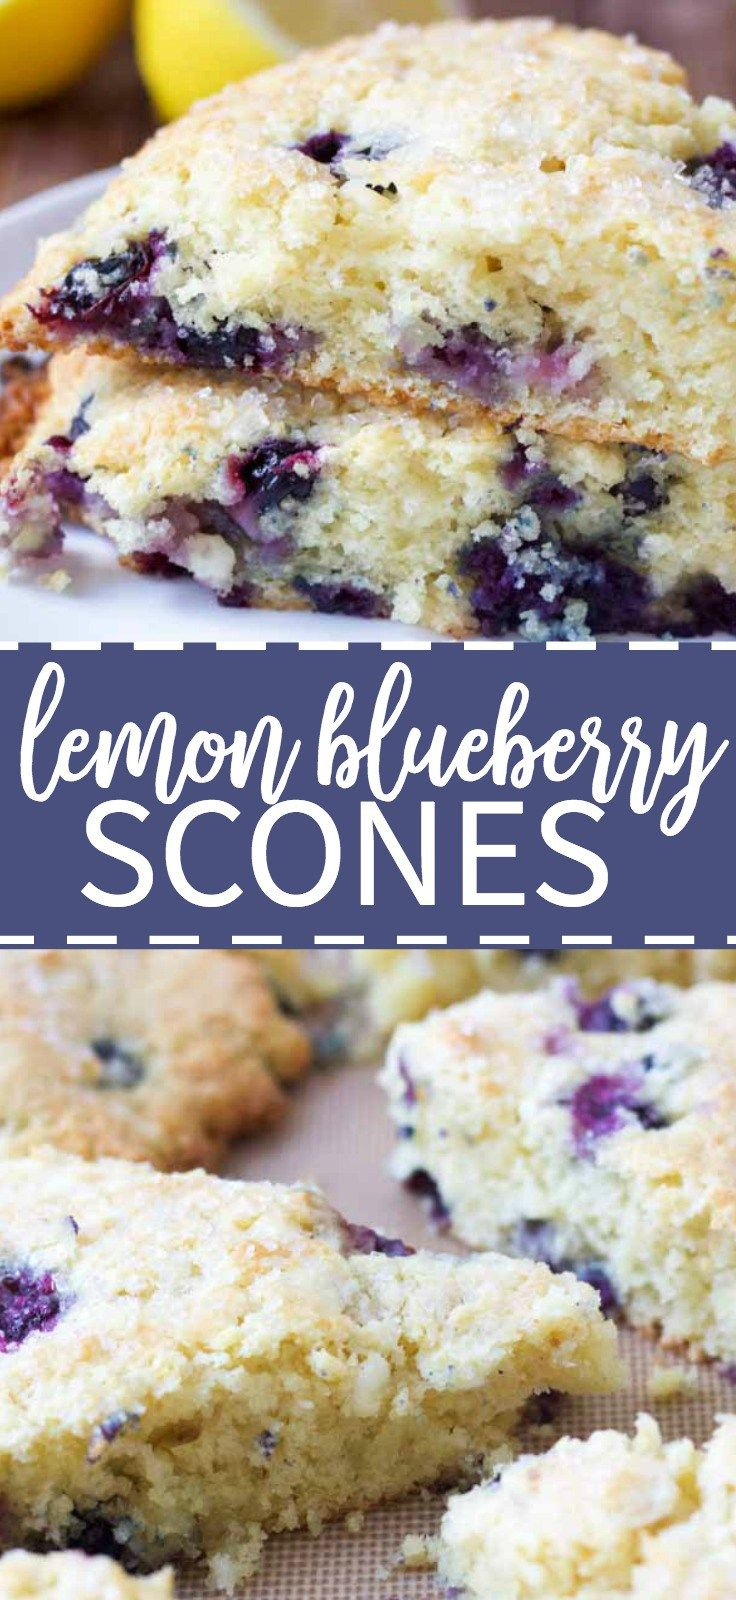 Lemon blueberry scones filled with white chocolate chips and a hearty sprinkling of sugar and bursting with lemon zest and juicy blueberries.